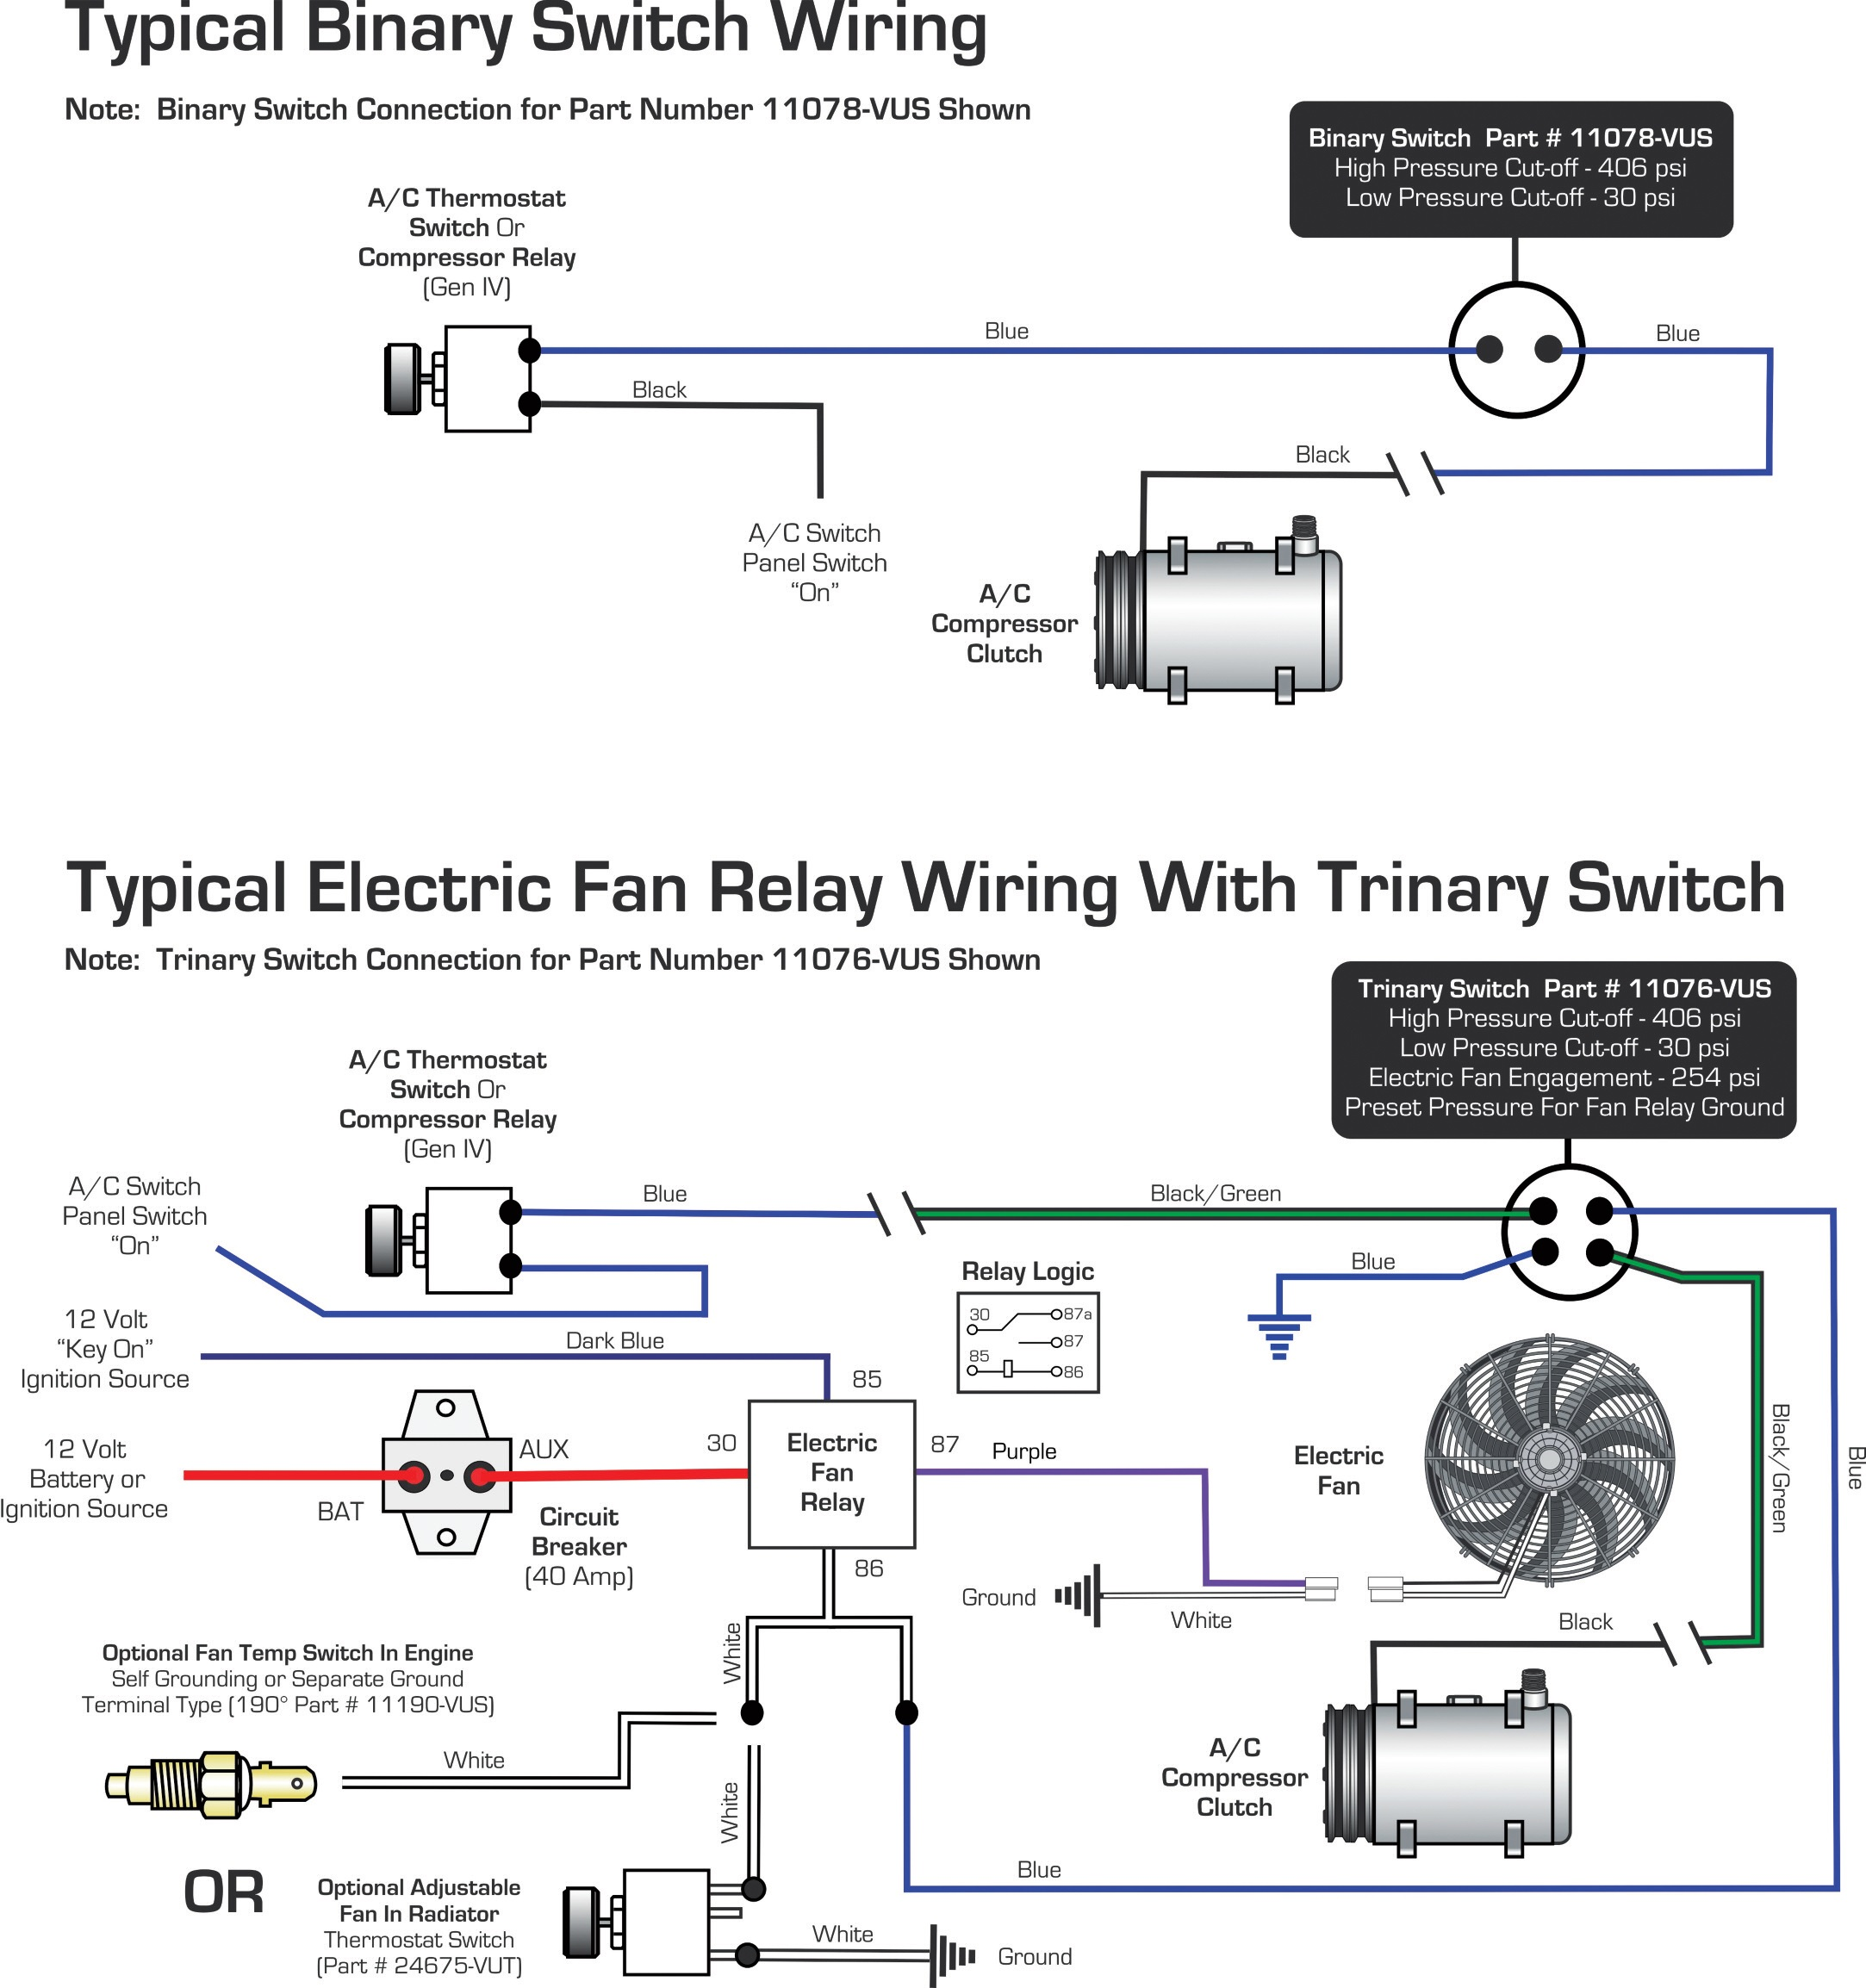 Vintage Air Trinary Switch Wiring Diagram Female Reveolution Of Ac Fan Blog Archive Diagrams Binary Rh Vintageair Com With Electric Fans A C